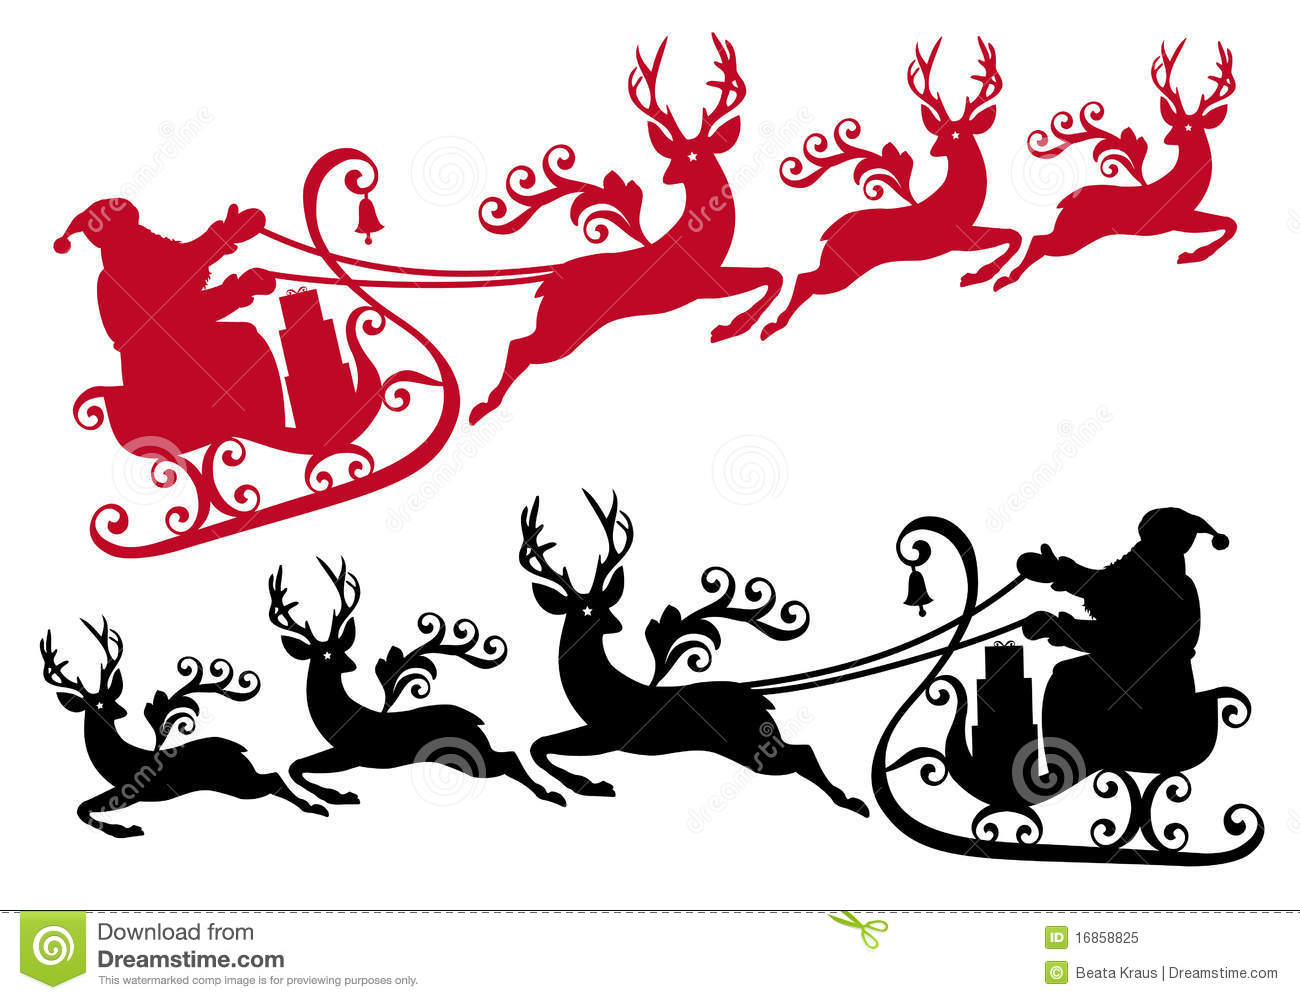 Santa with his sleigh and reindeer, christmas background.